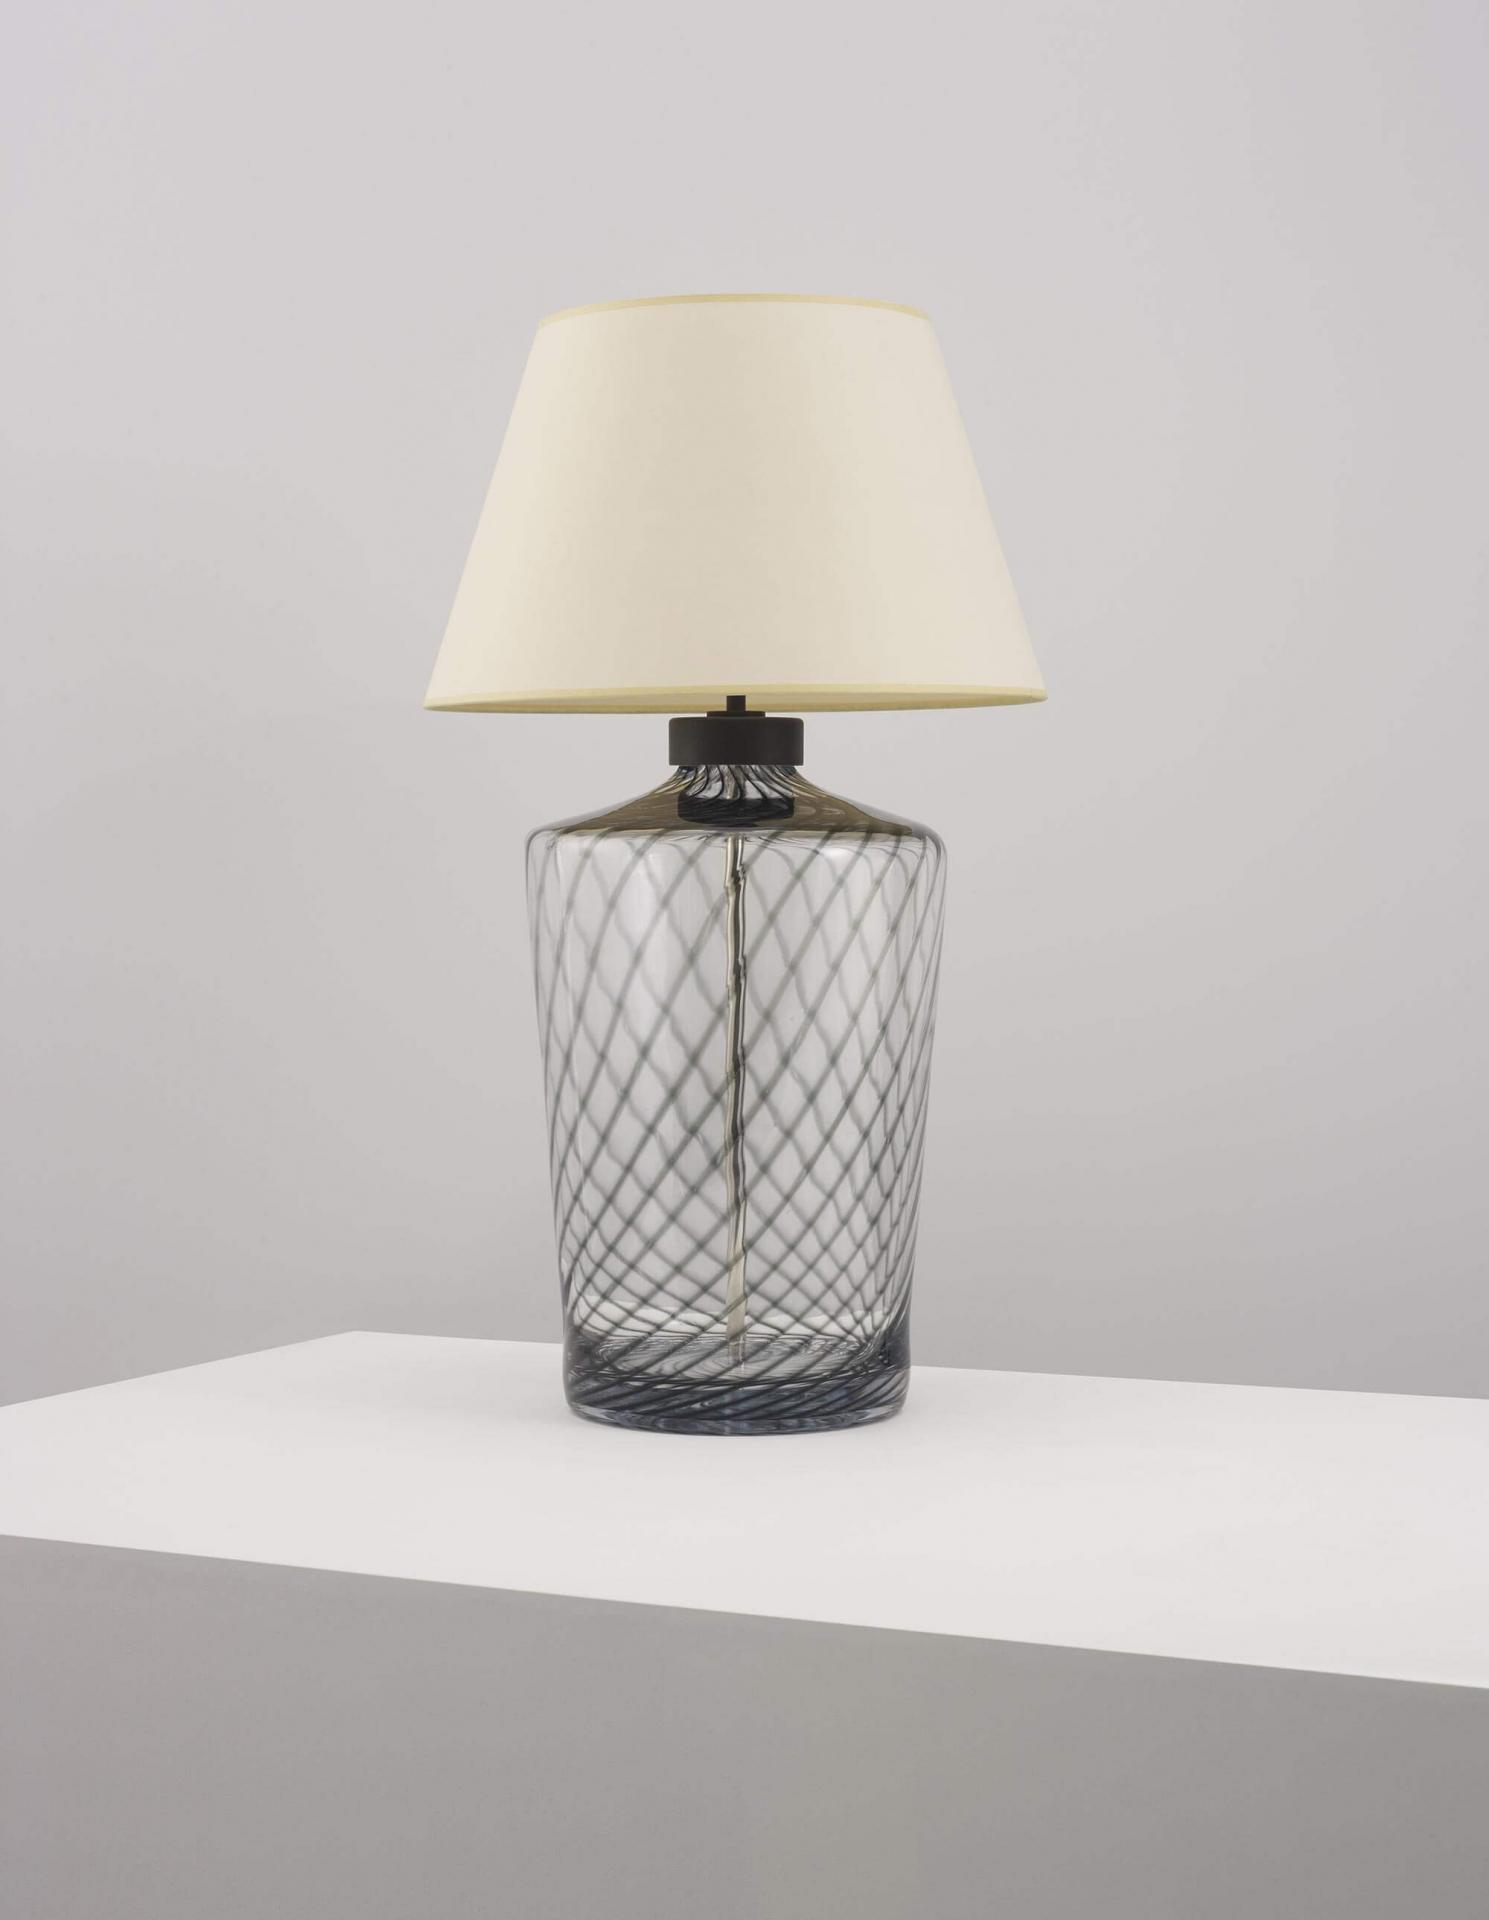 Blown glass table lamp by Collier Webb